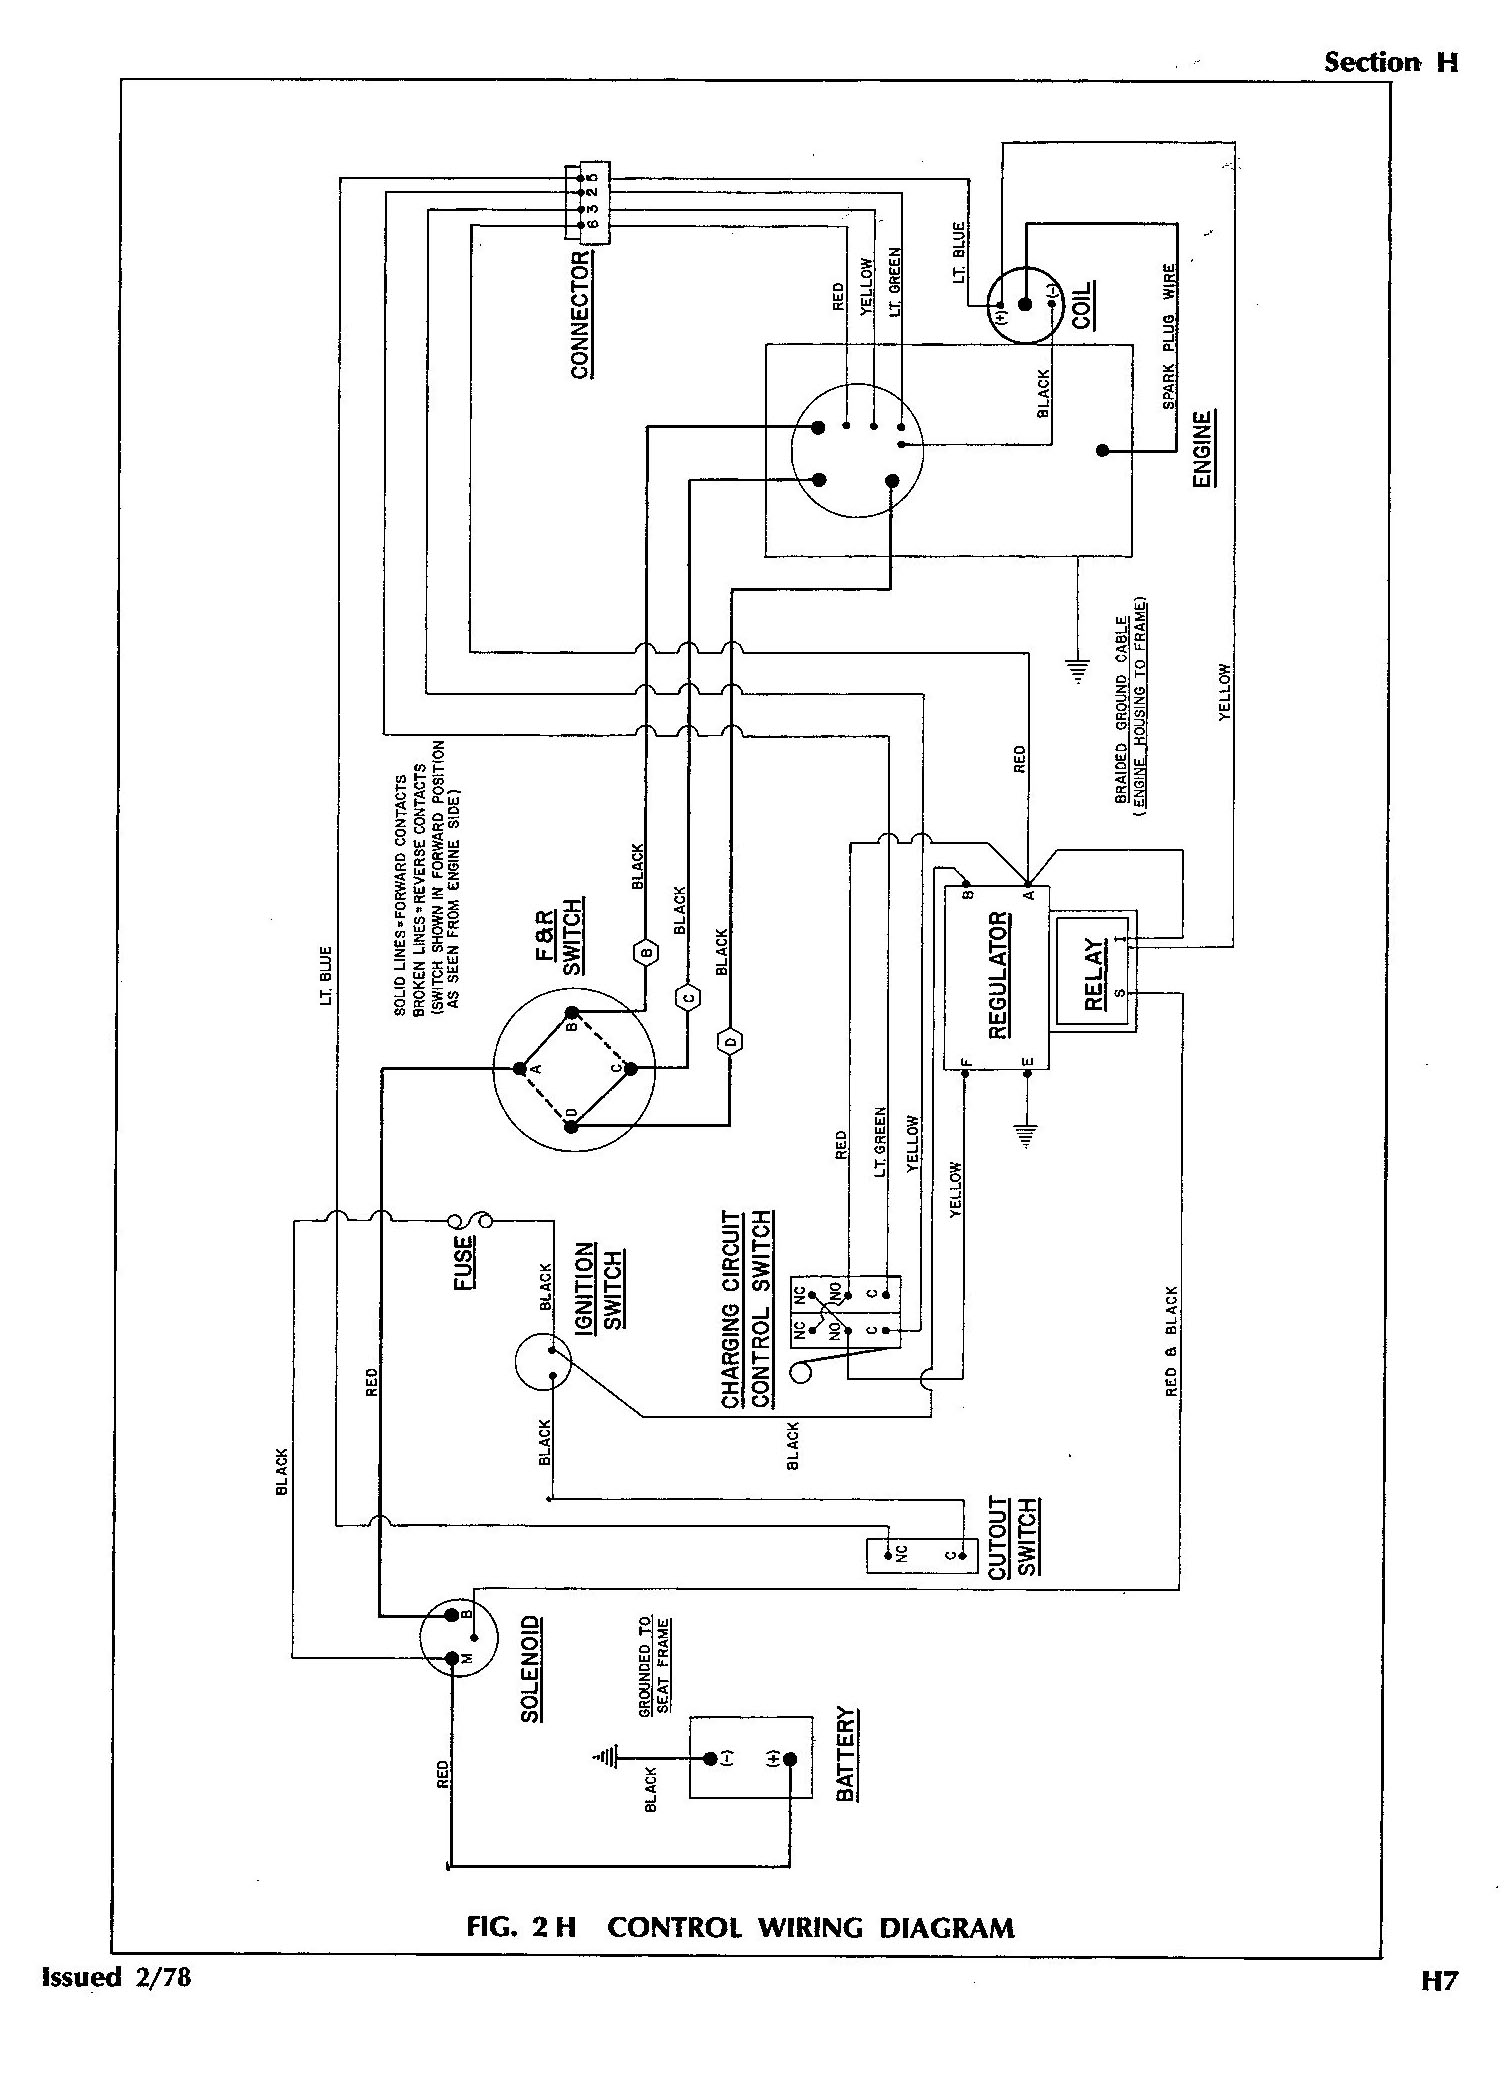 1979 Ezgo Gas Golf Cart Wiring Diagram Block And Schematic Diagrams Msd 8739 Vintagegolfcartparts Com Rh 36 Volt 1986